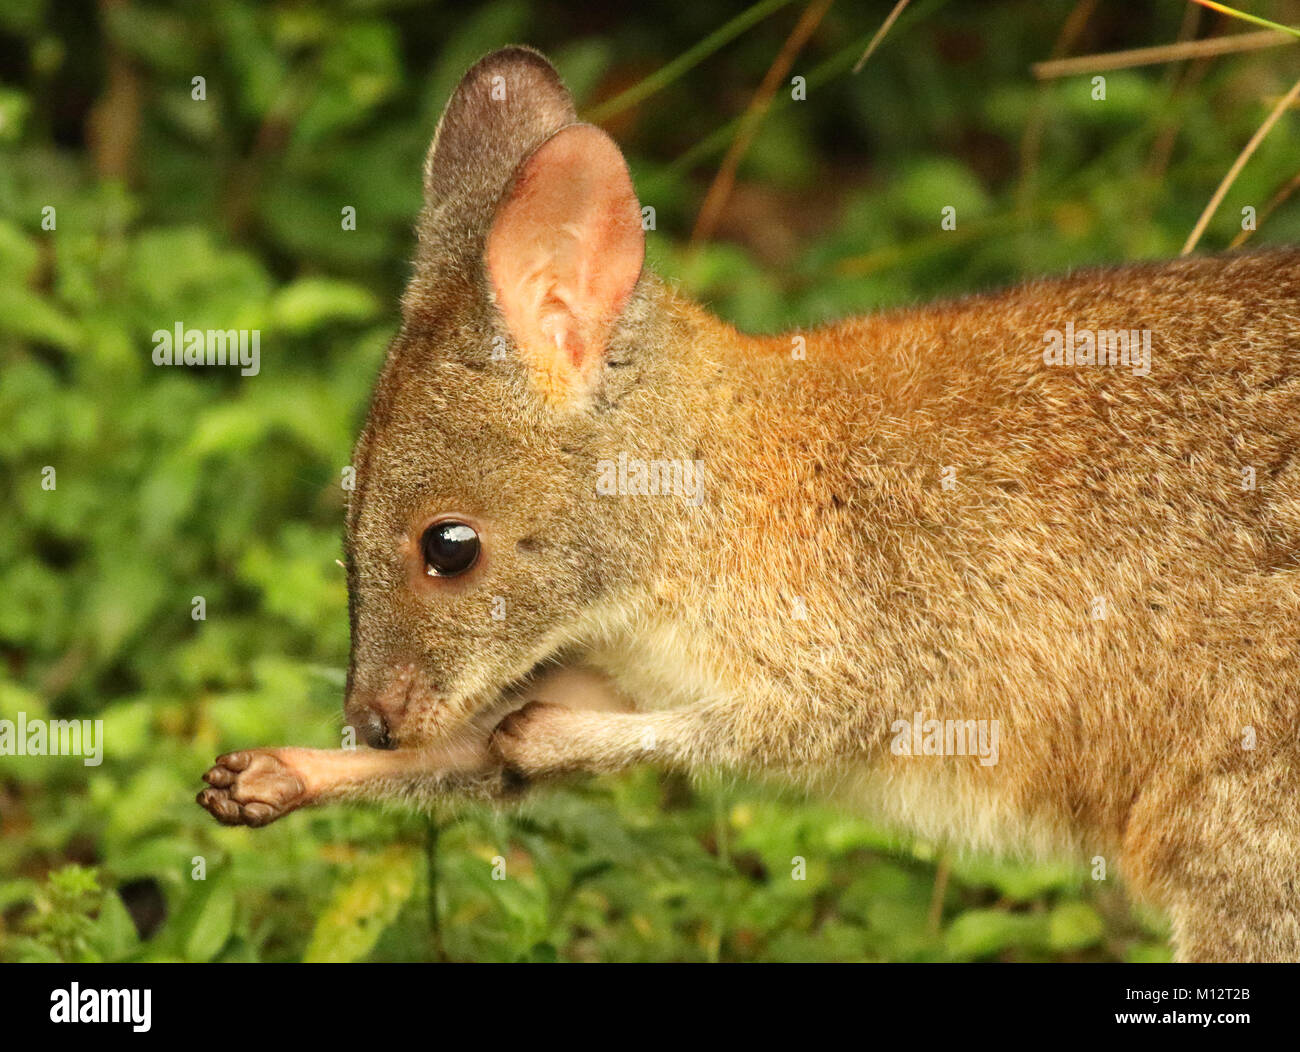 A Pademelon scratching an itch in Lamington National Park. - Stock Image